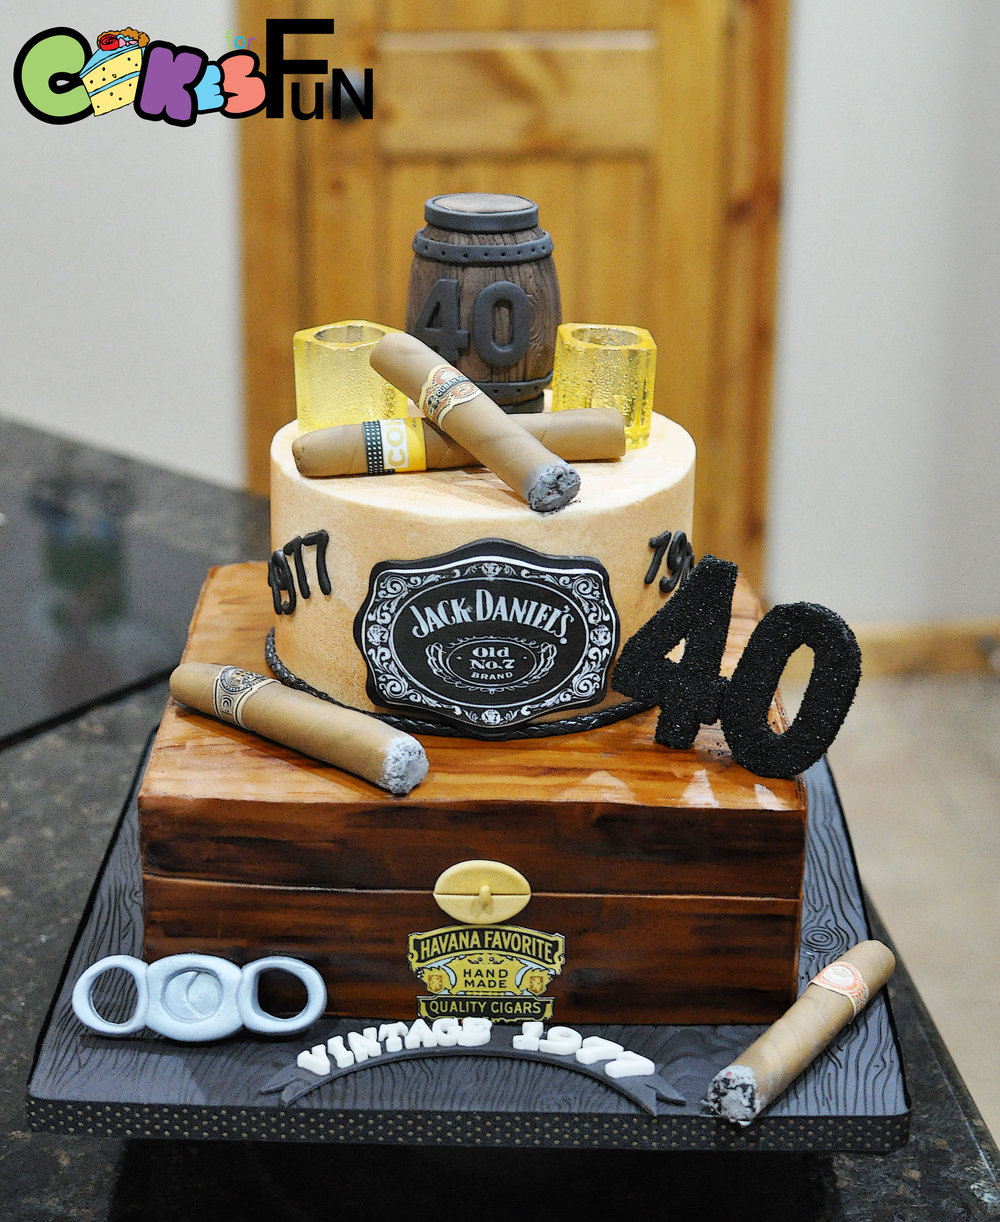 cigar and whiskey cake.jpg